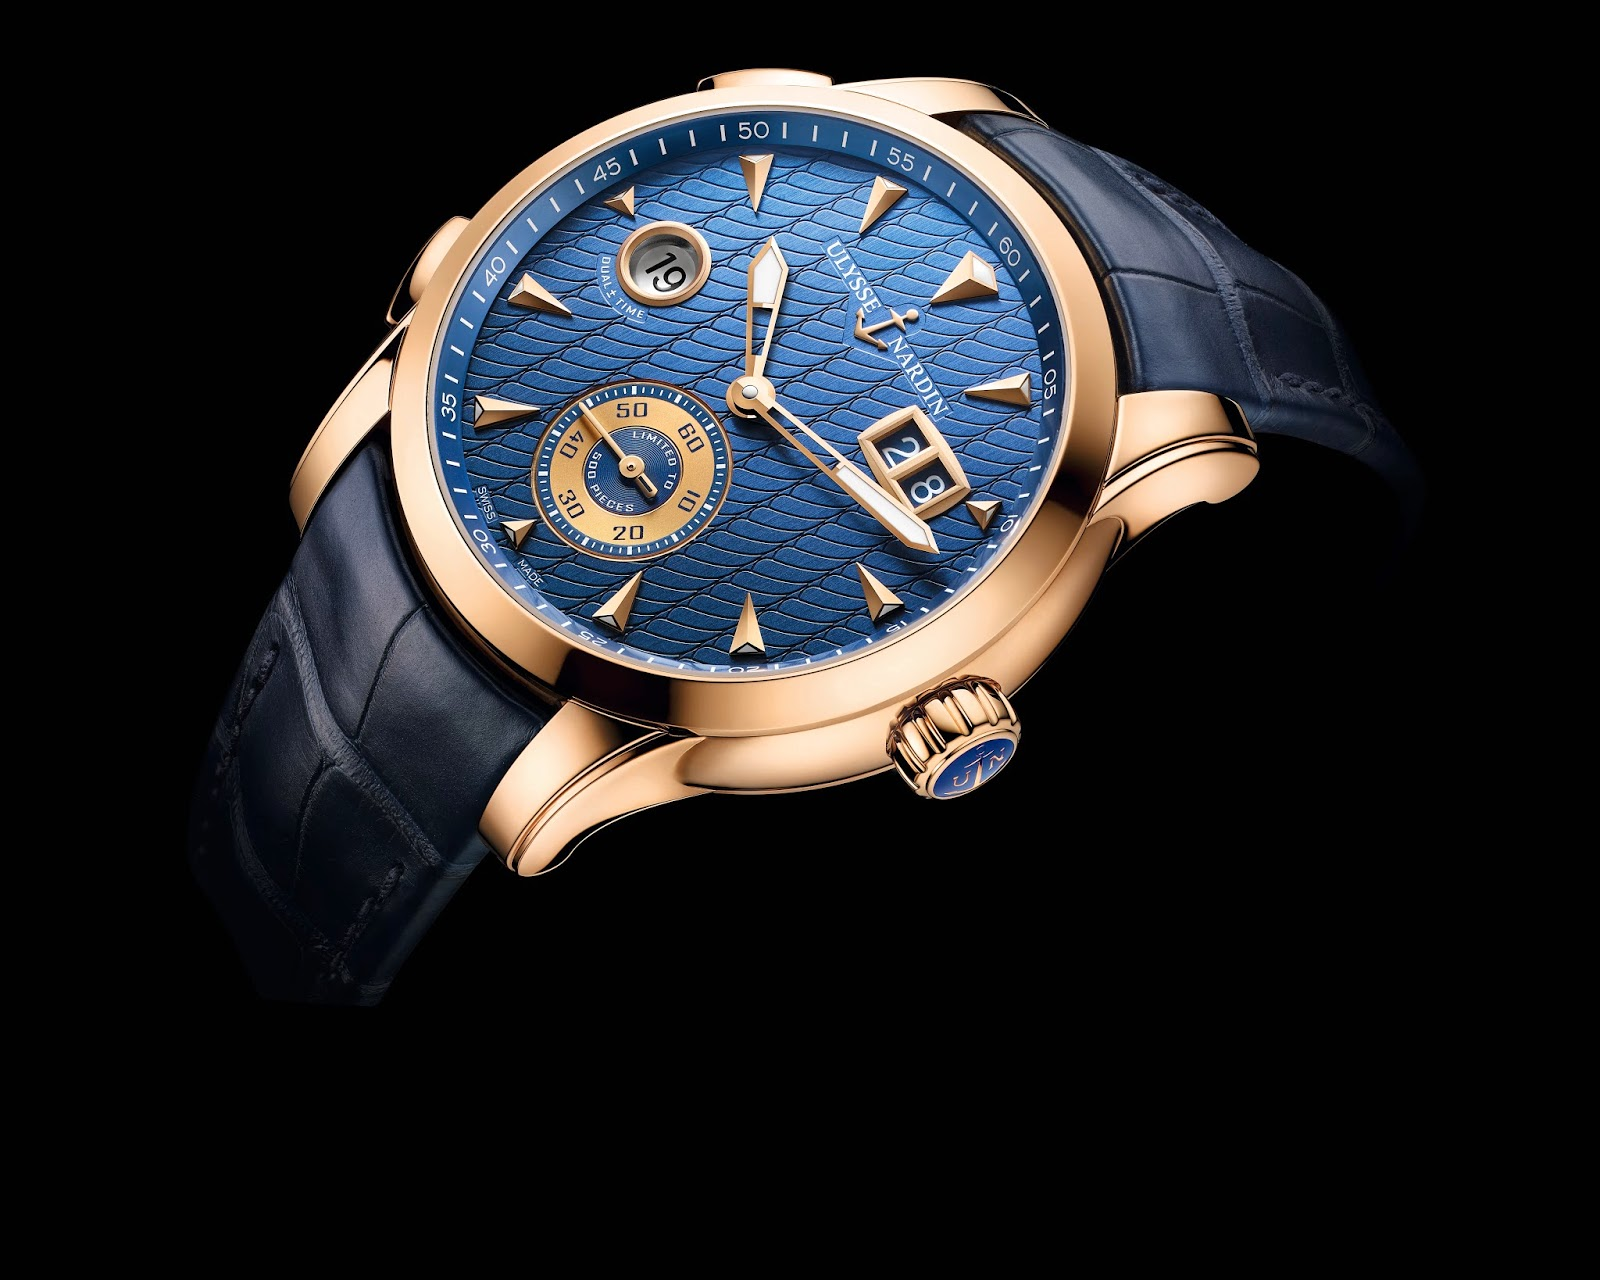 Ullysse Nardin Dual Time Manufacture2